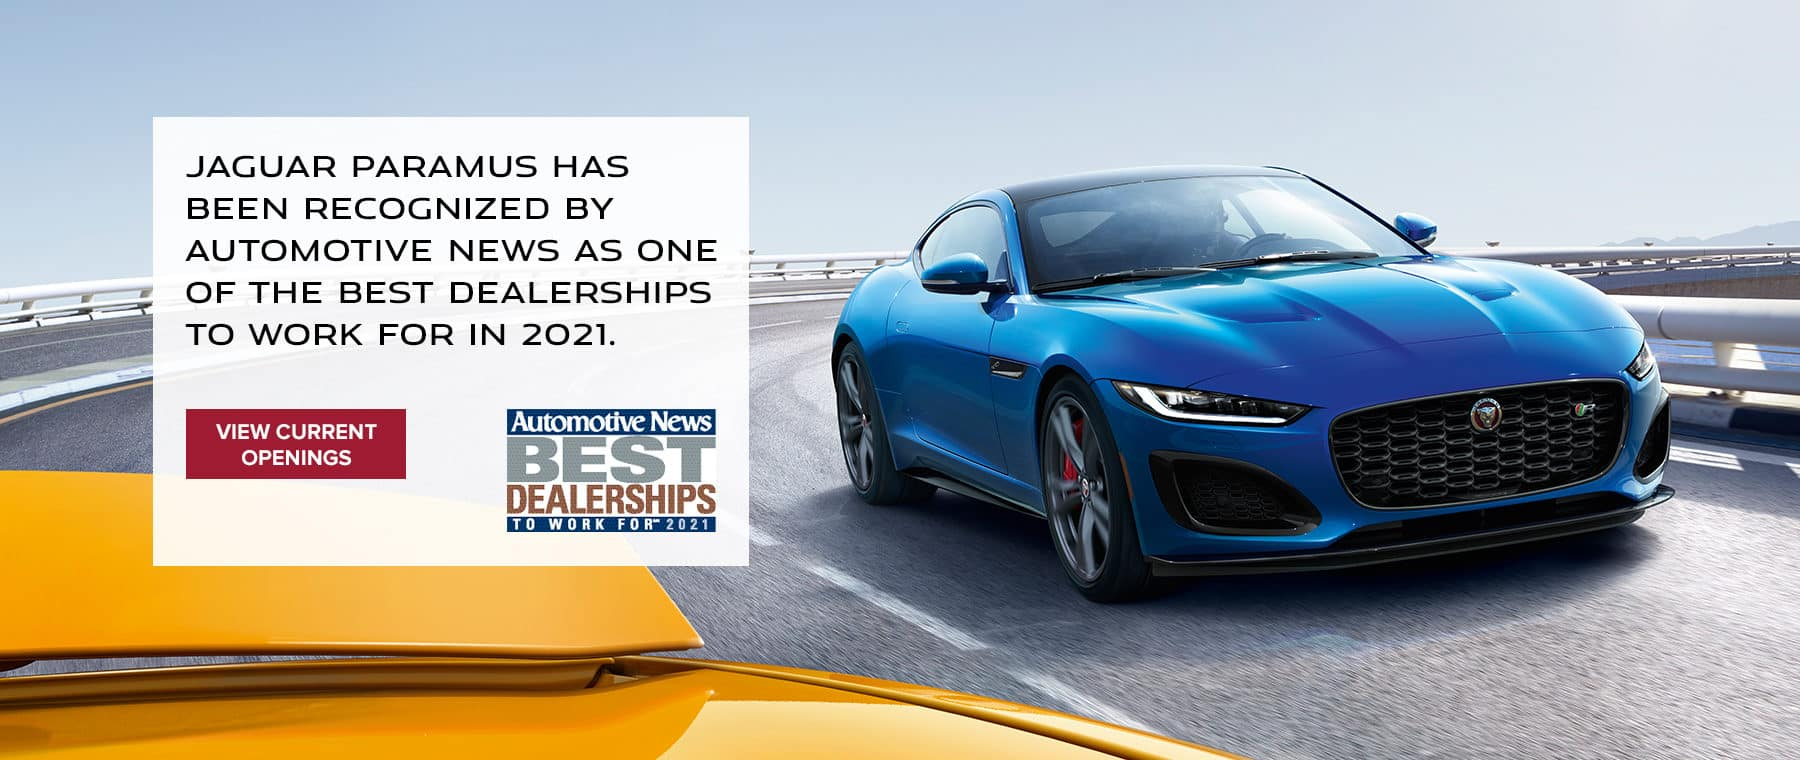 Jaguar Paramus has been recognized by Automotive News as one of the Best Dealerships to Work For in 2021.